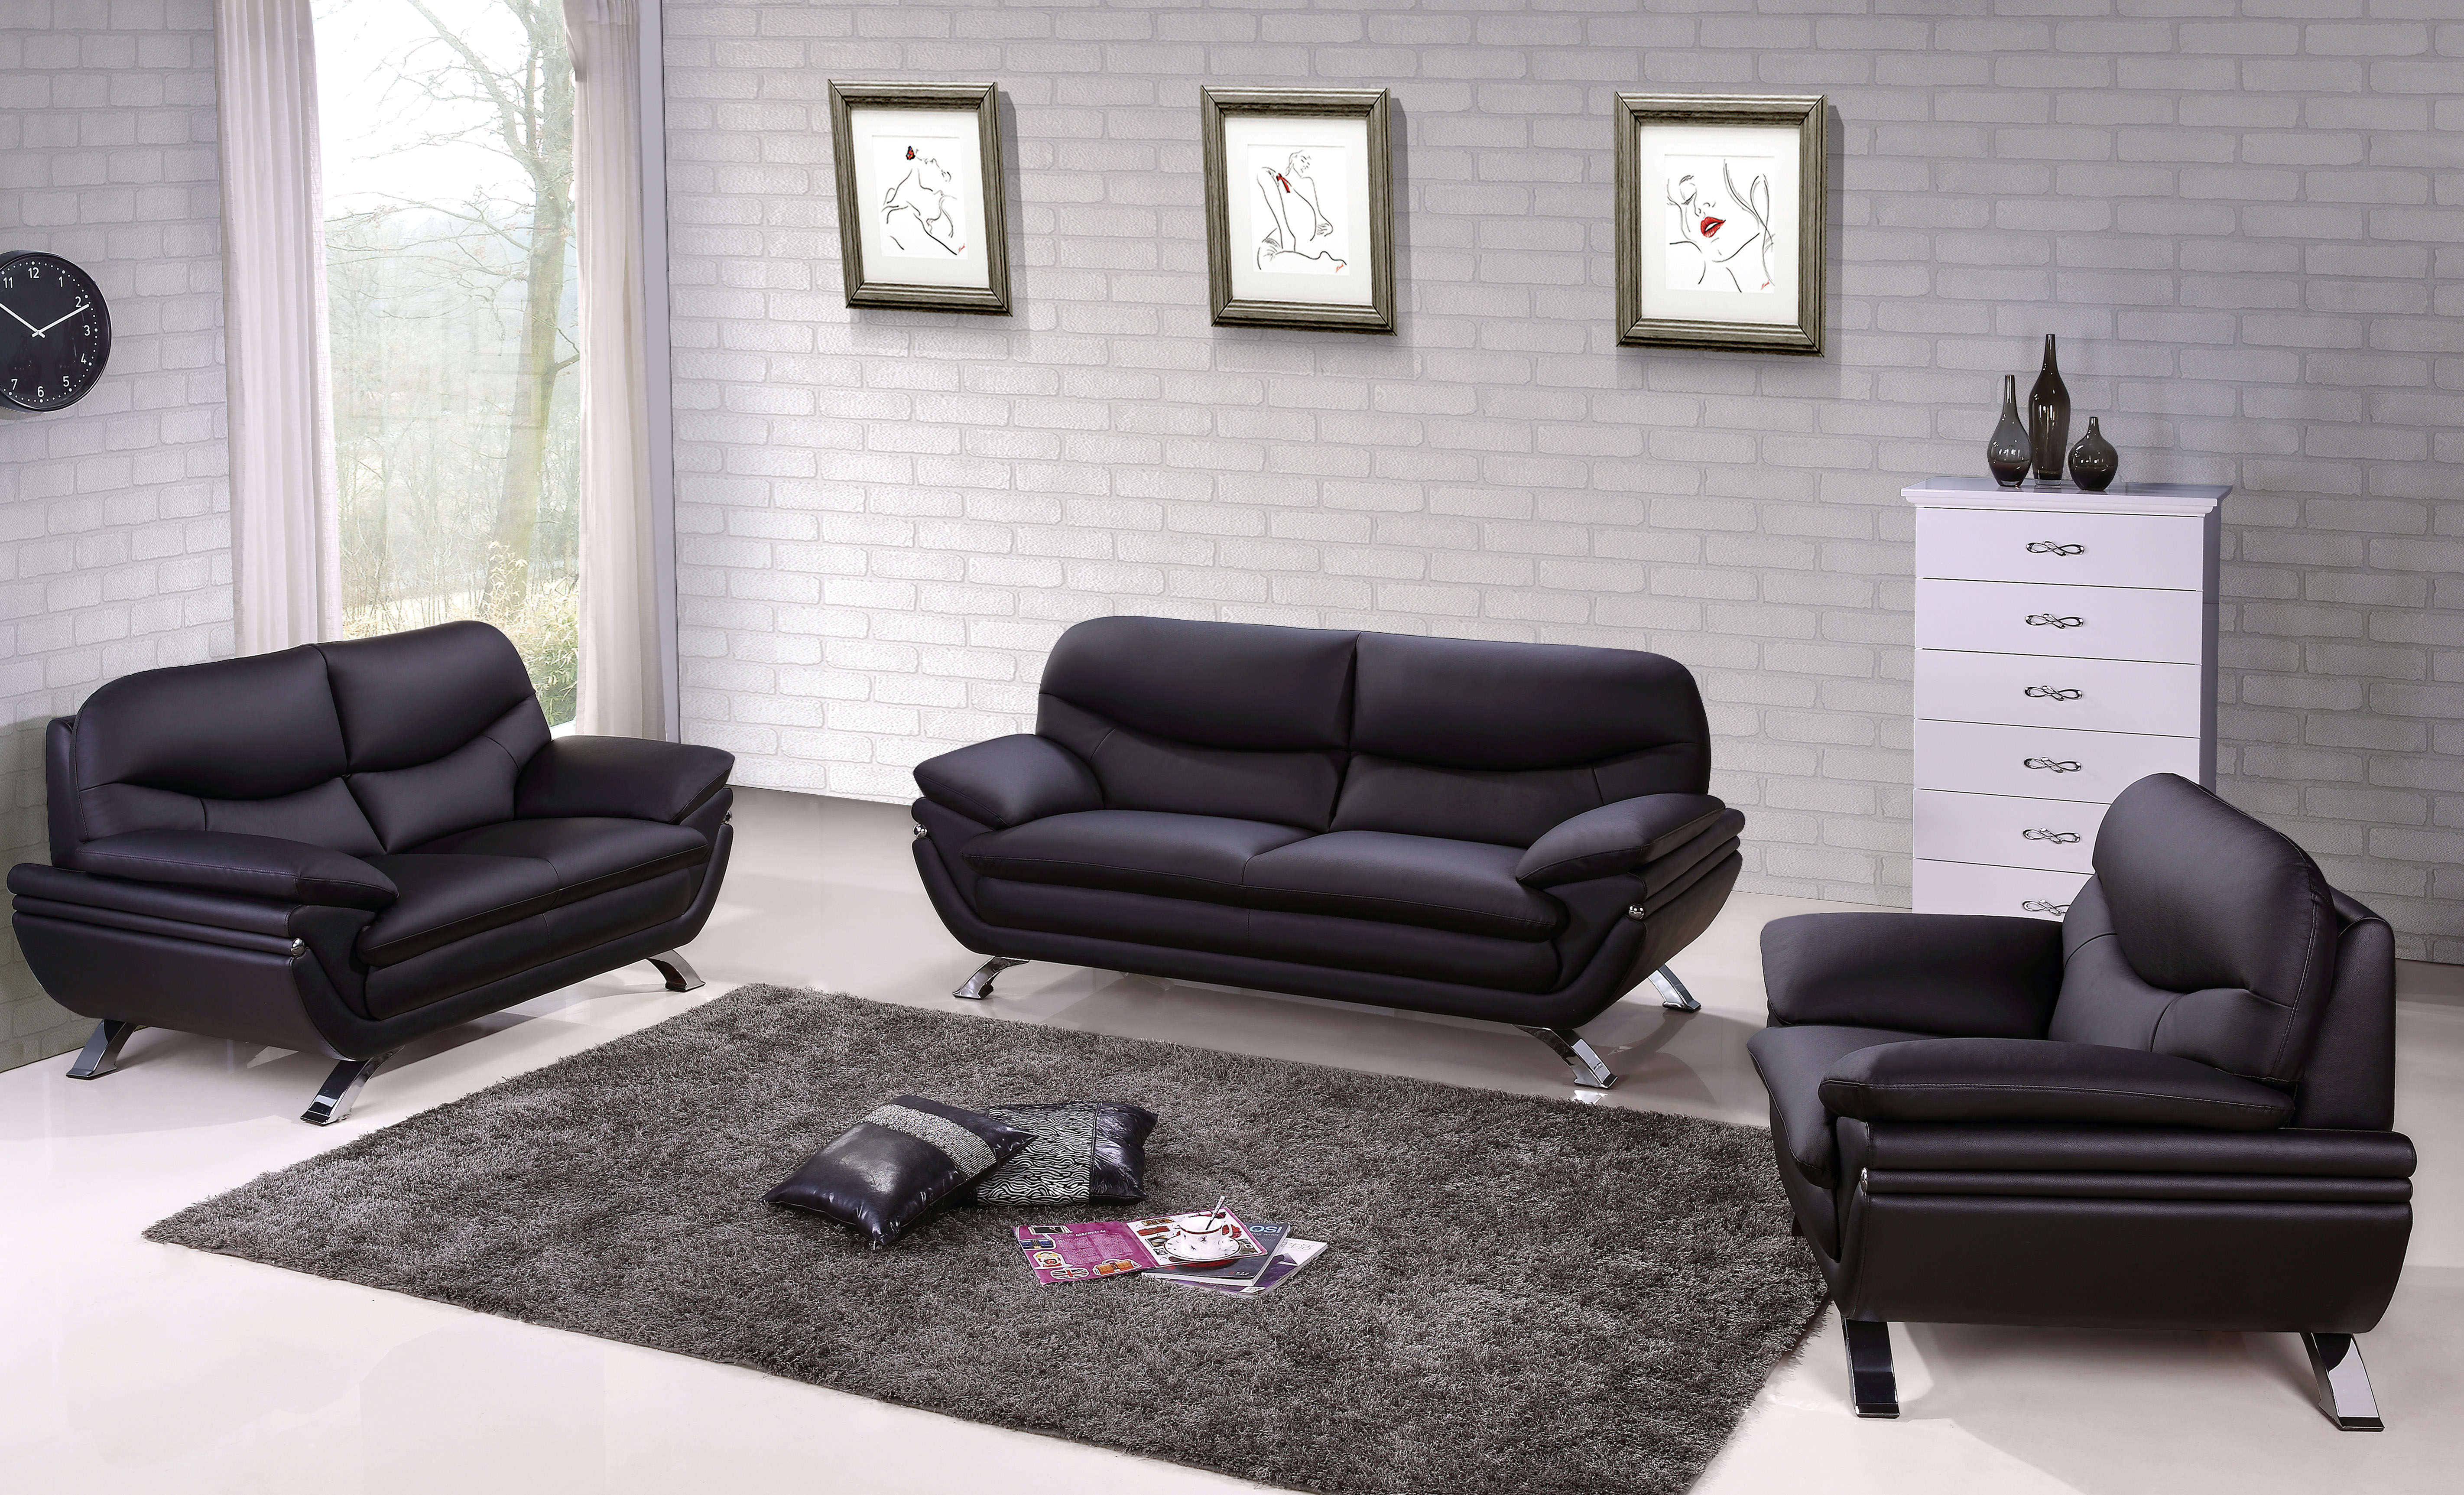 Harmony Ying Yang Contemporary Leather Living Room Sofa Set